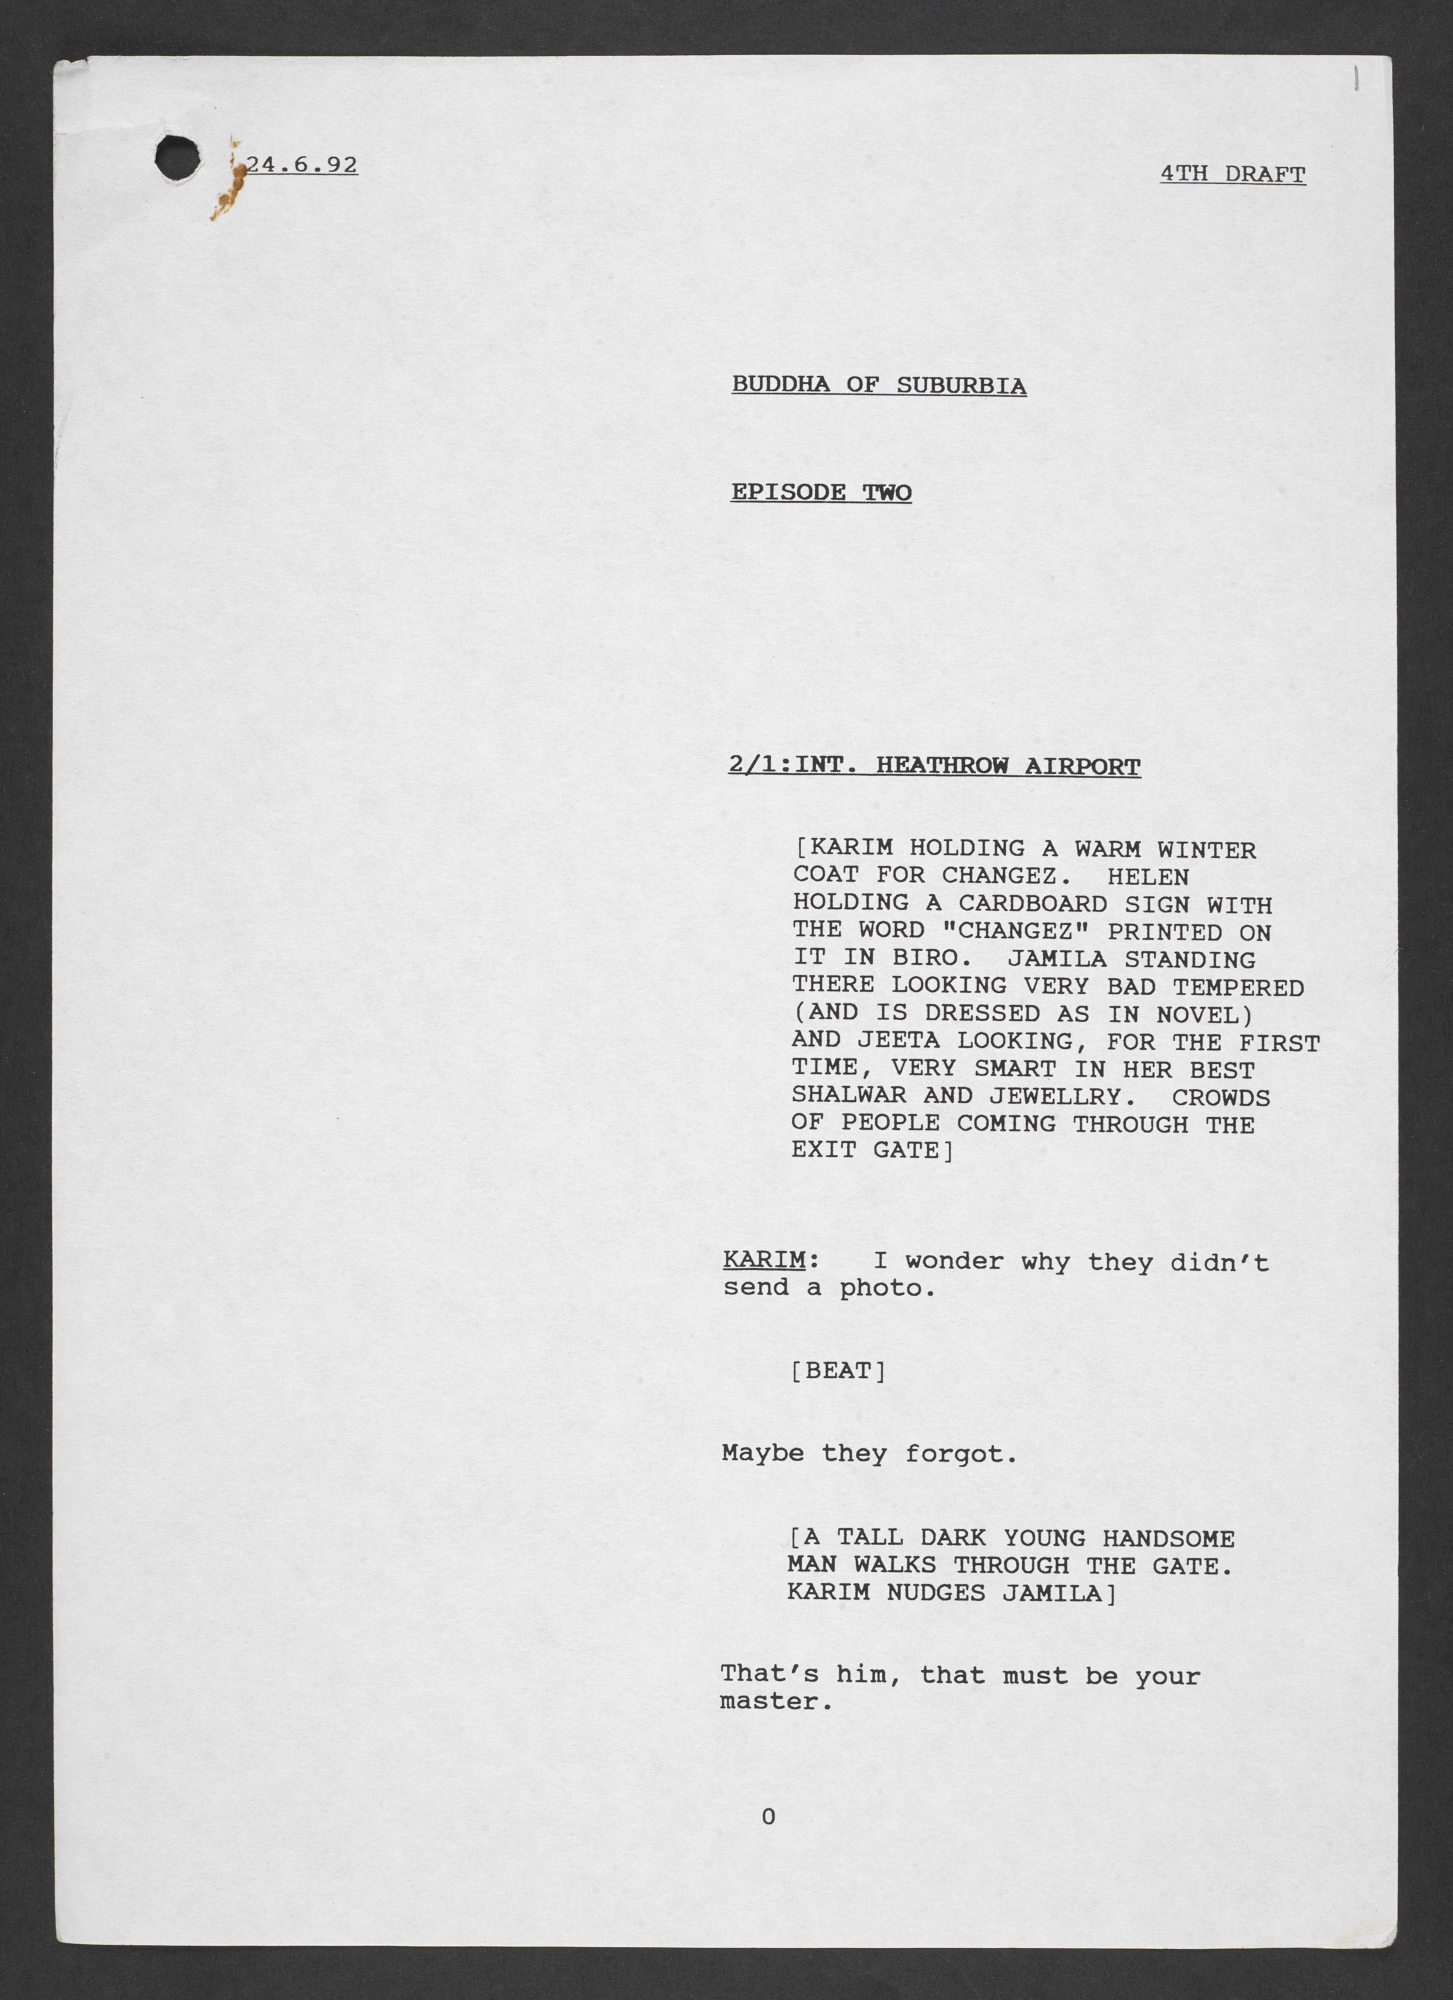 Typescript draft for episode two of 'The Buddha of Suburbia' TV series